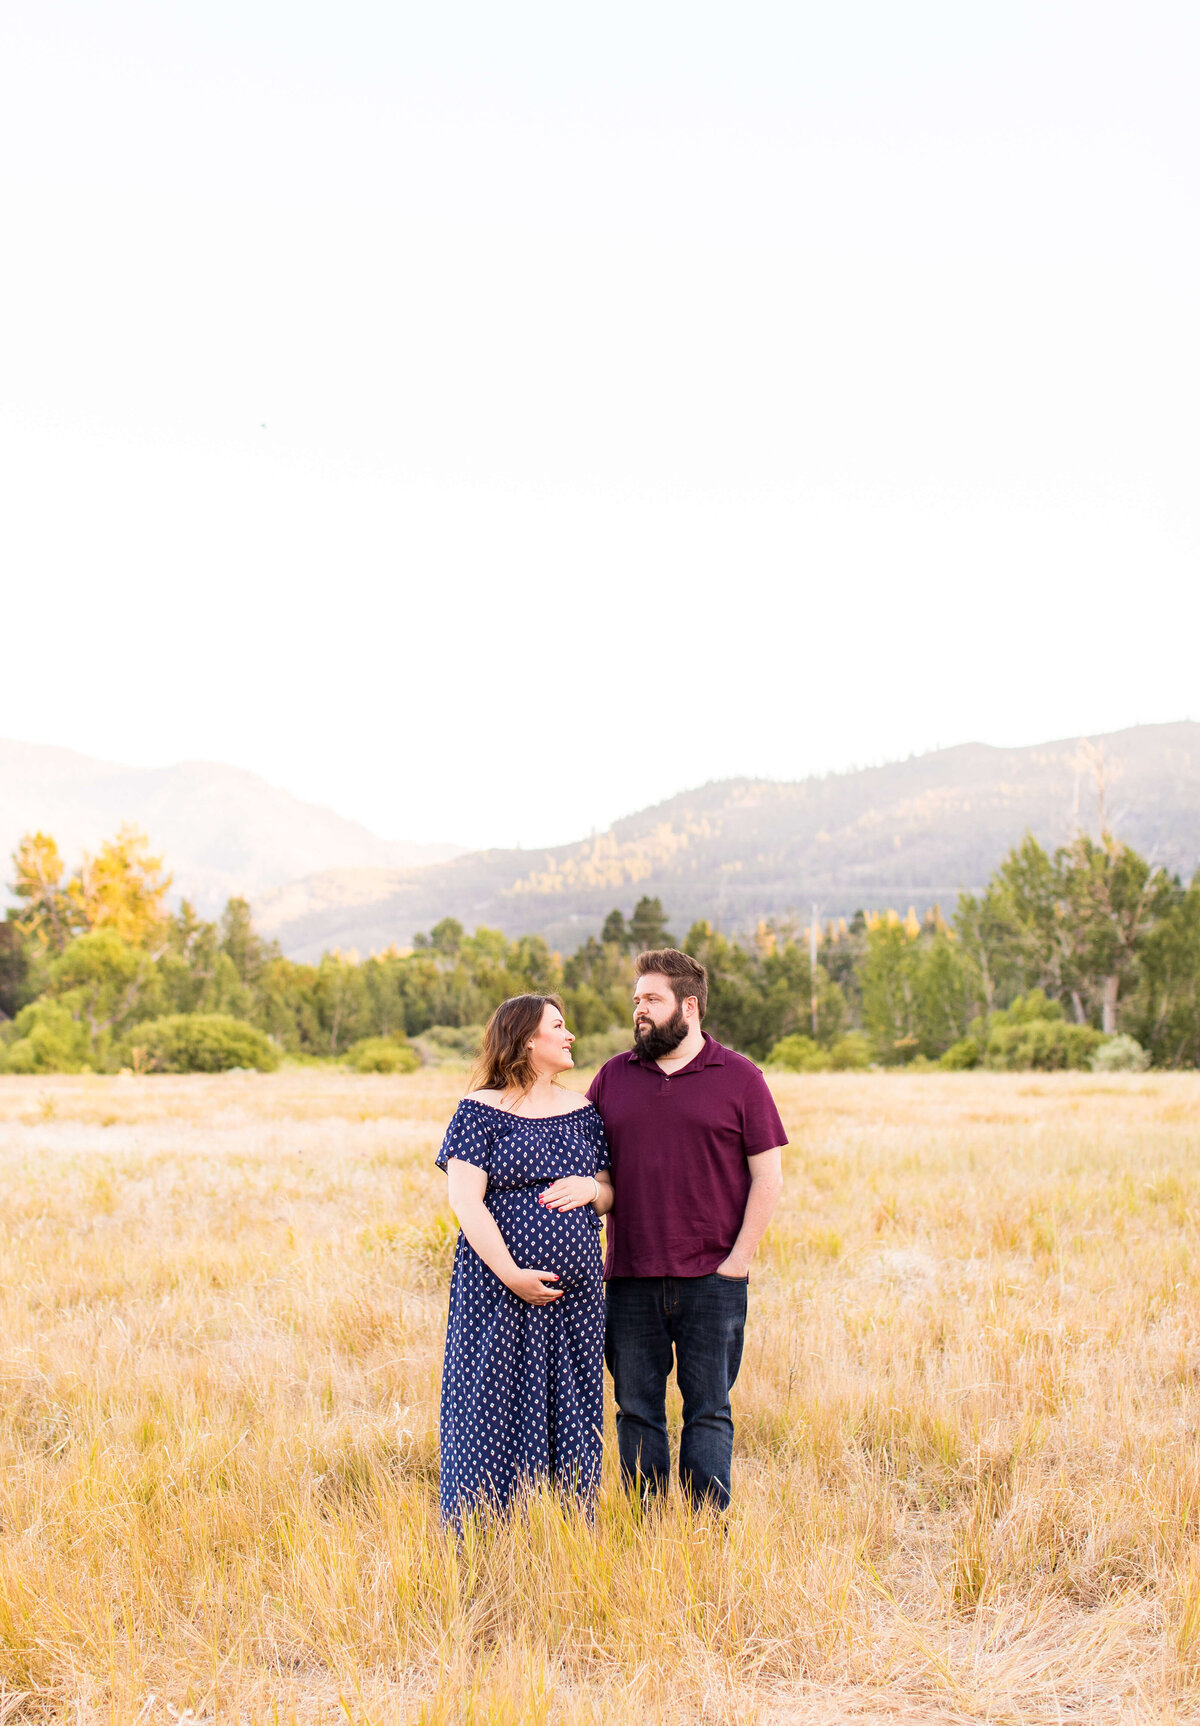 Ashley&JoelMaternitySession2020-10